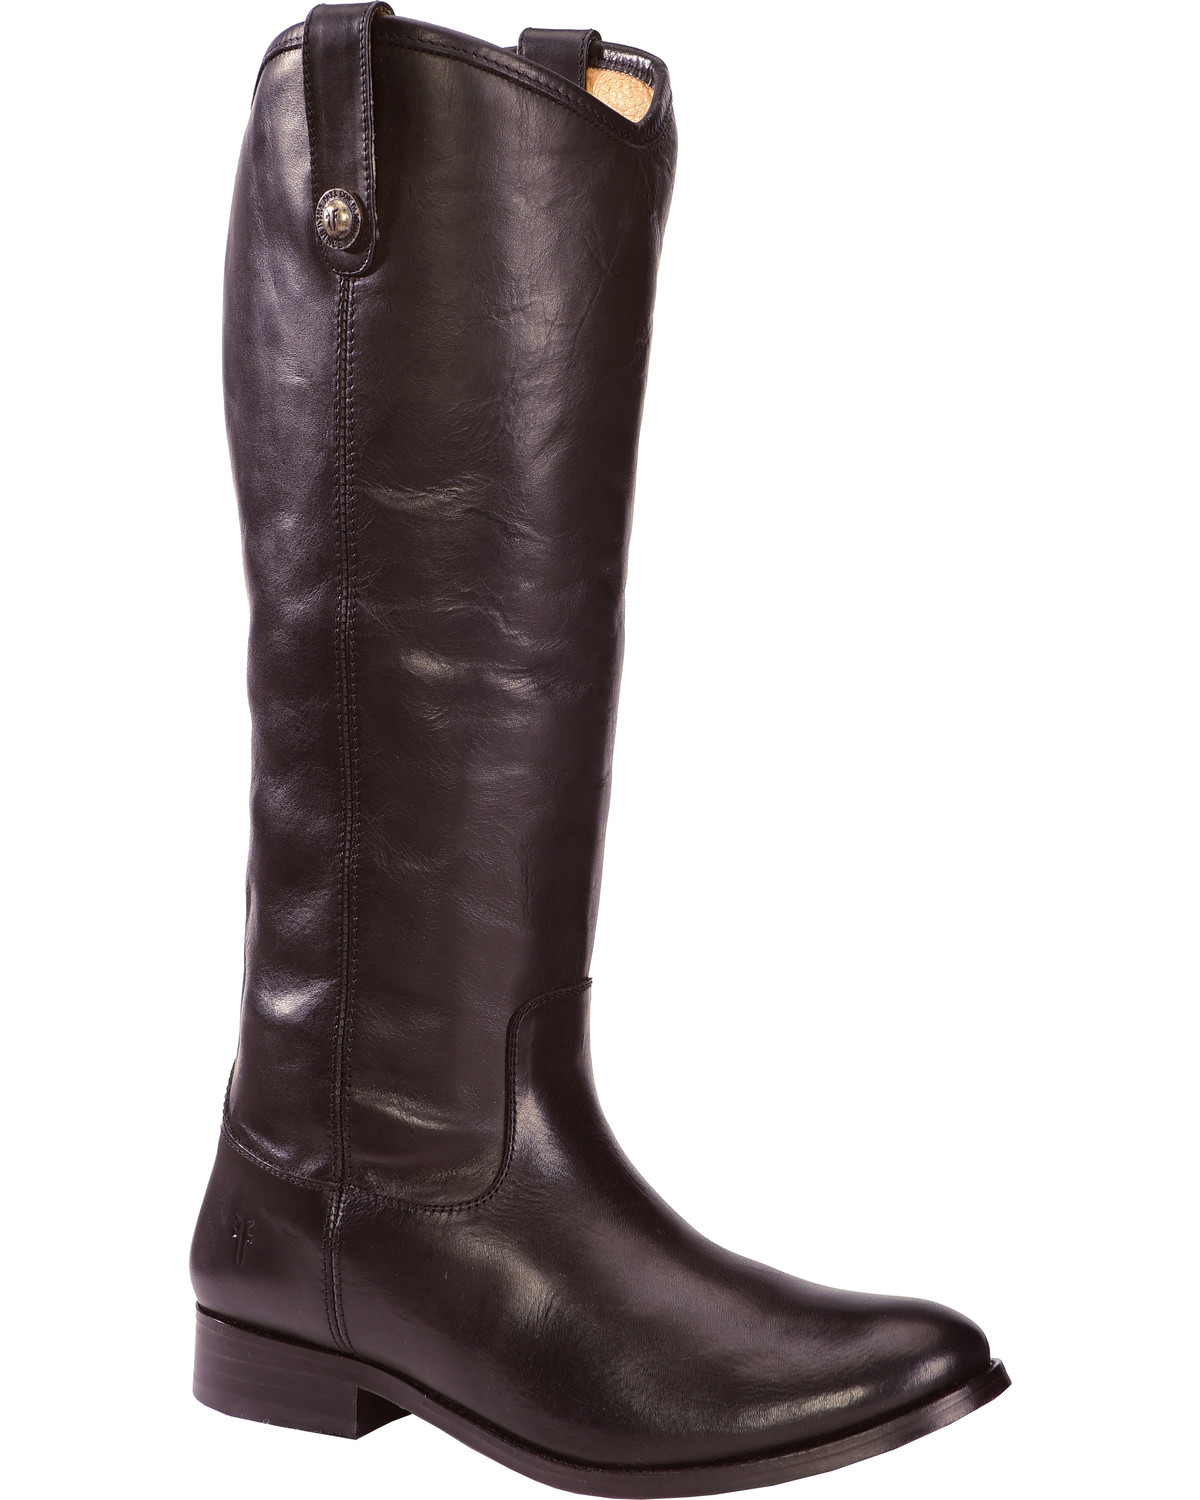 5ee2153472f9 Frye Women s Melissa Button Riding Boots - Wide Calf